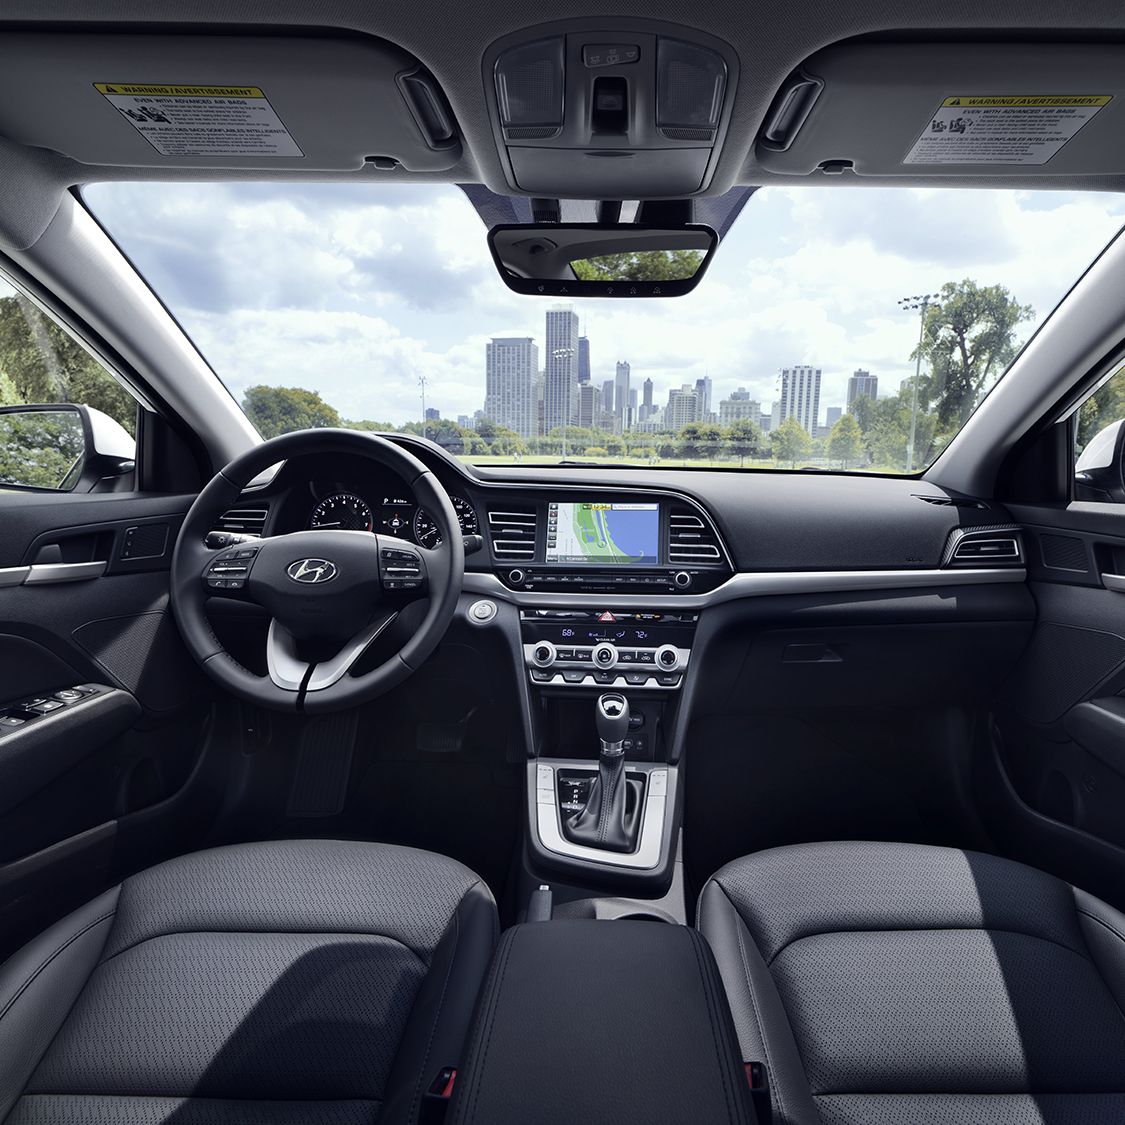 hight resolution of the all new 2019 hyundai elantrainterior view of the drivers and passengers cabin of the 2019